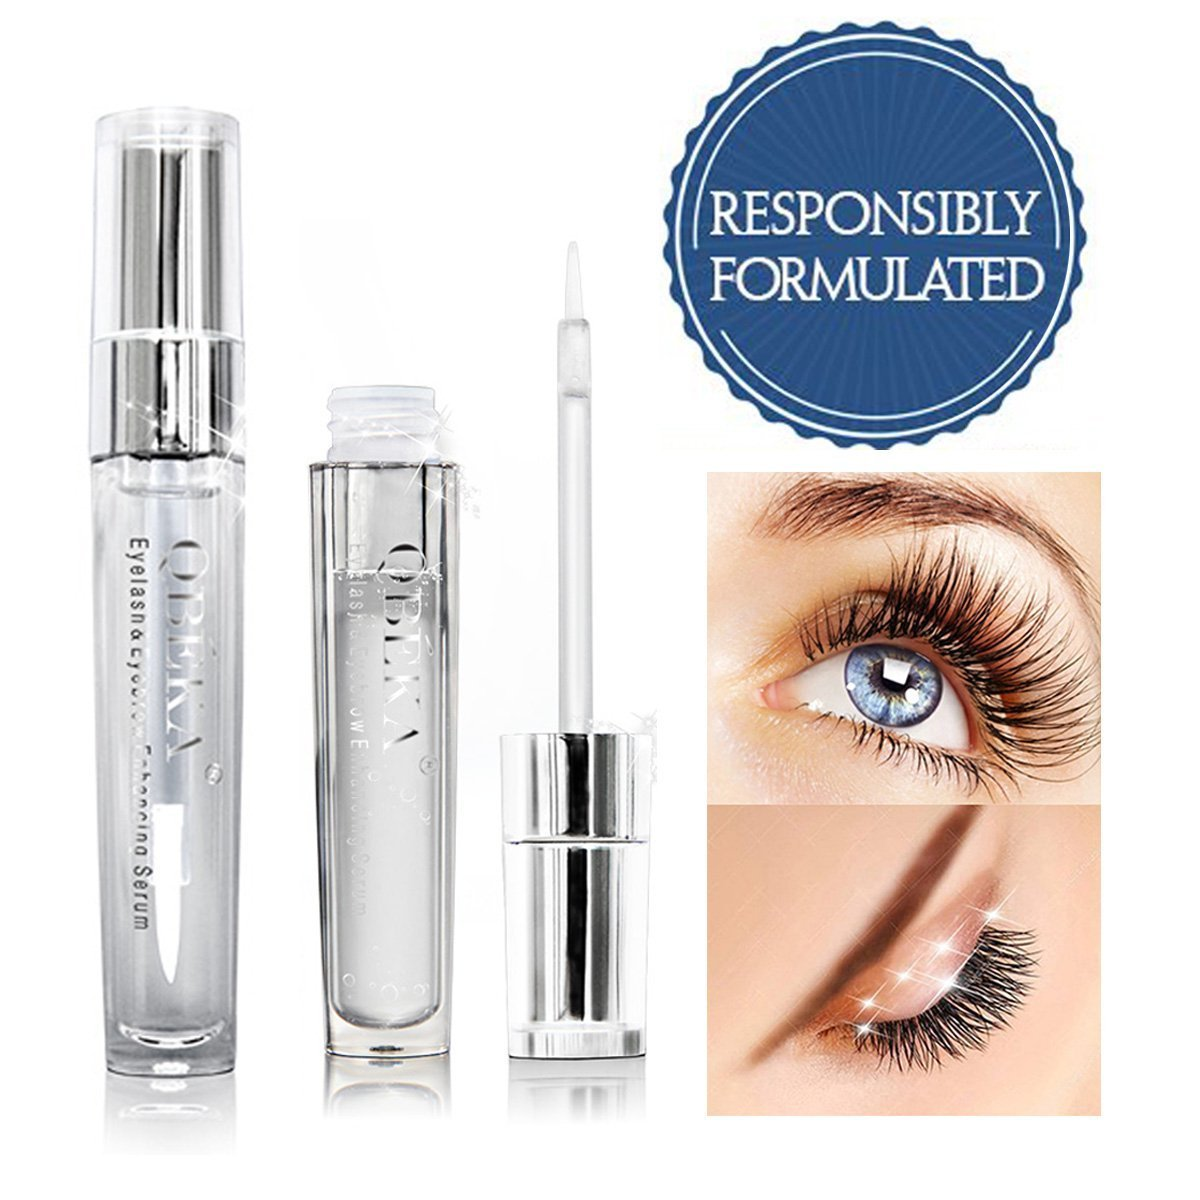 Cheap Best Eyelash Growth Find Best Eyelash Growth Deals On Line At